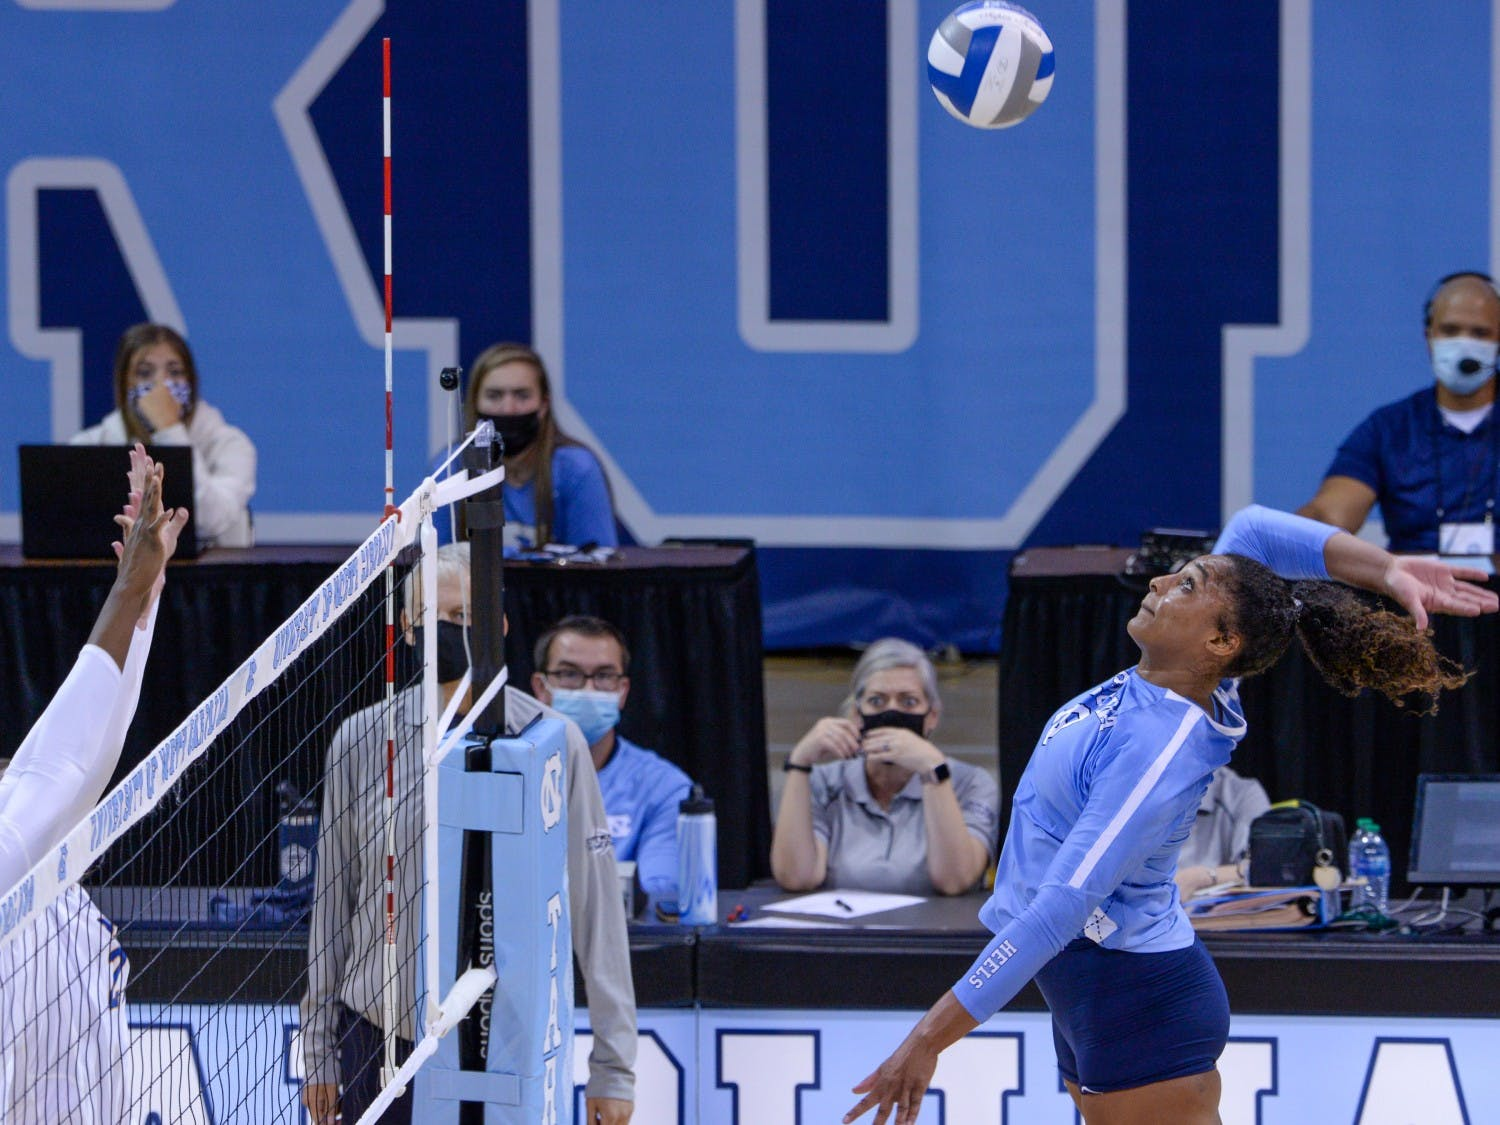 UNC graduate student outside hitter Nia Robinson (18) hits the ball at the game against Pittsburgh on Sept. 24 at Carmichael Arena. UNC lost 1-3.